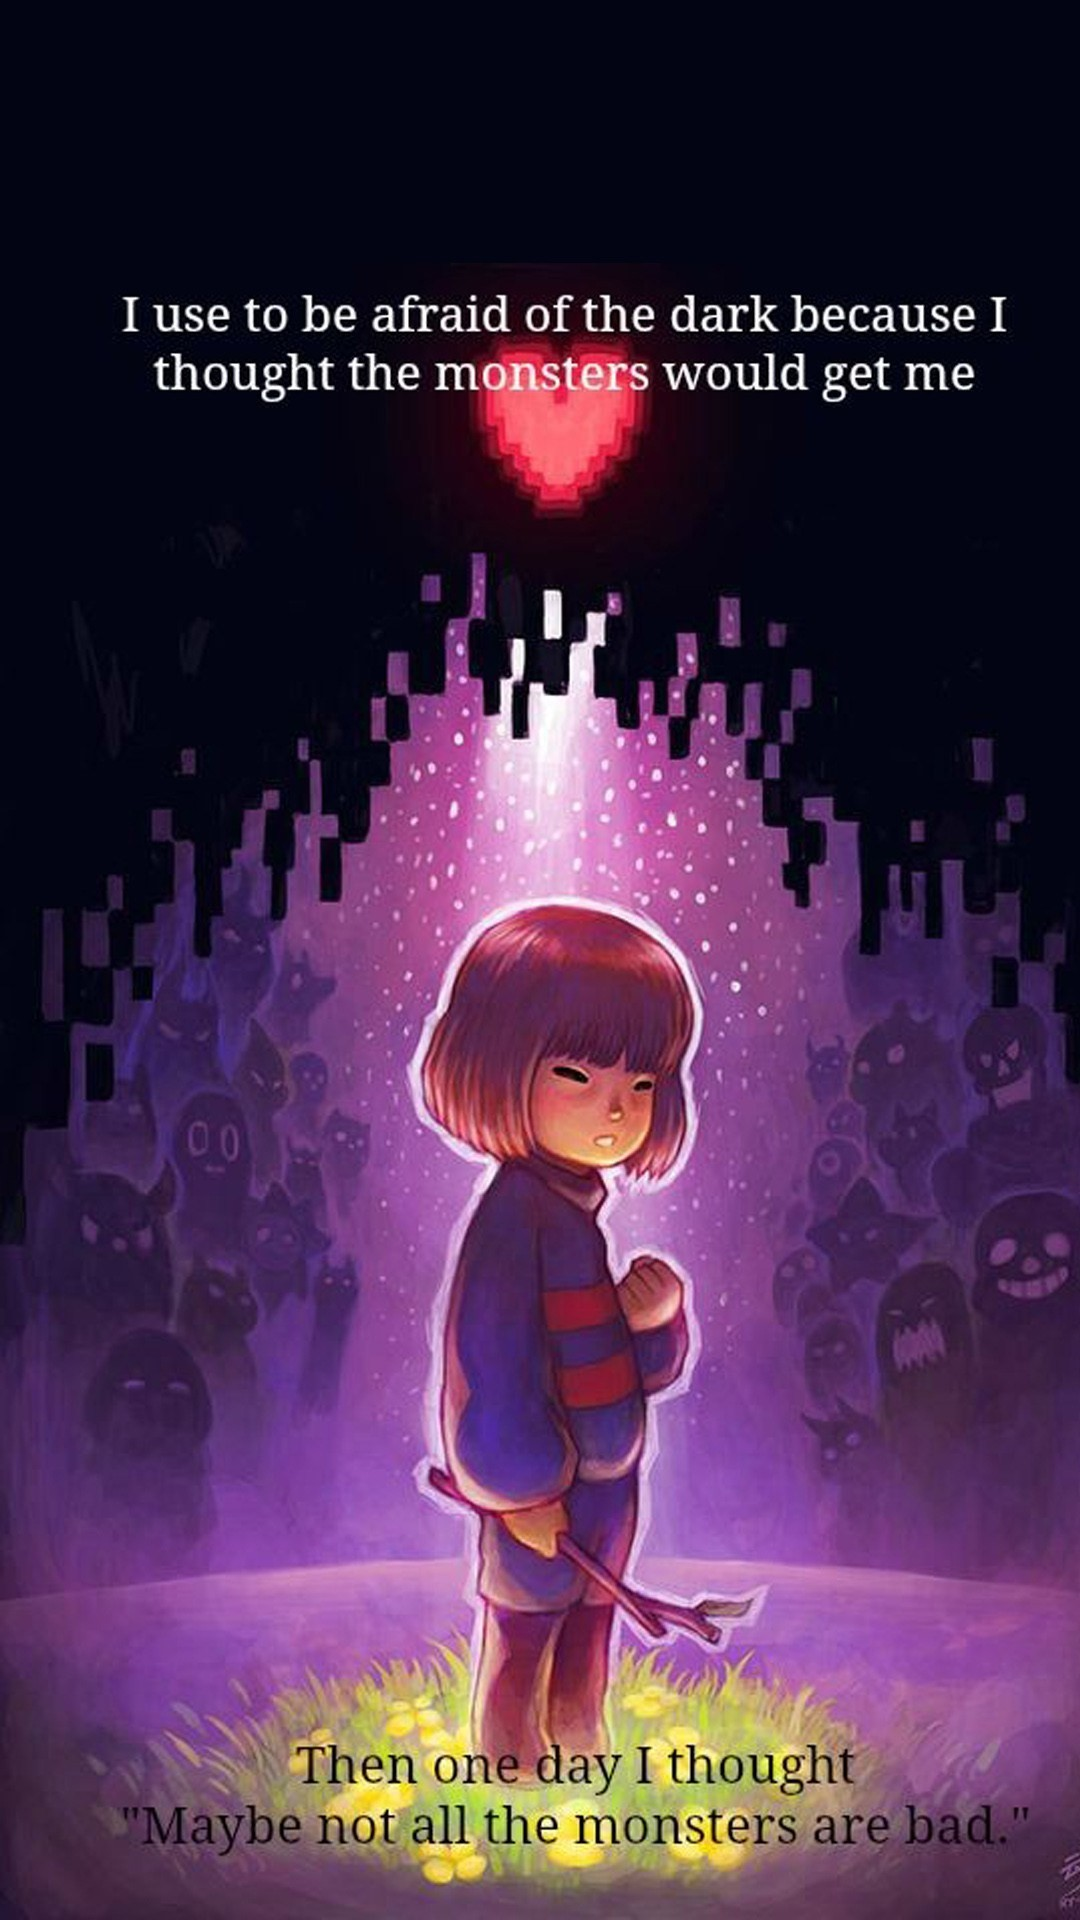 1080x1920 Undertale Phone Wallpaper 183 ① Download Free Backgrounds For